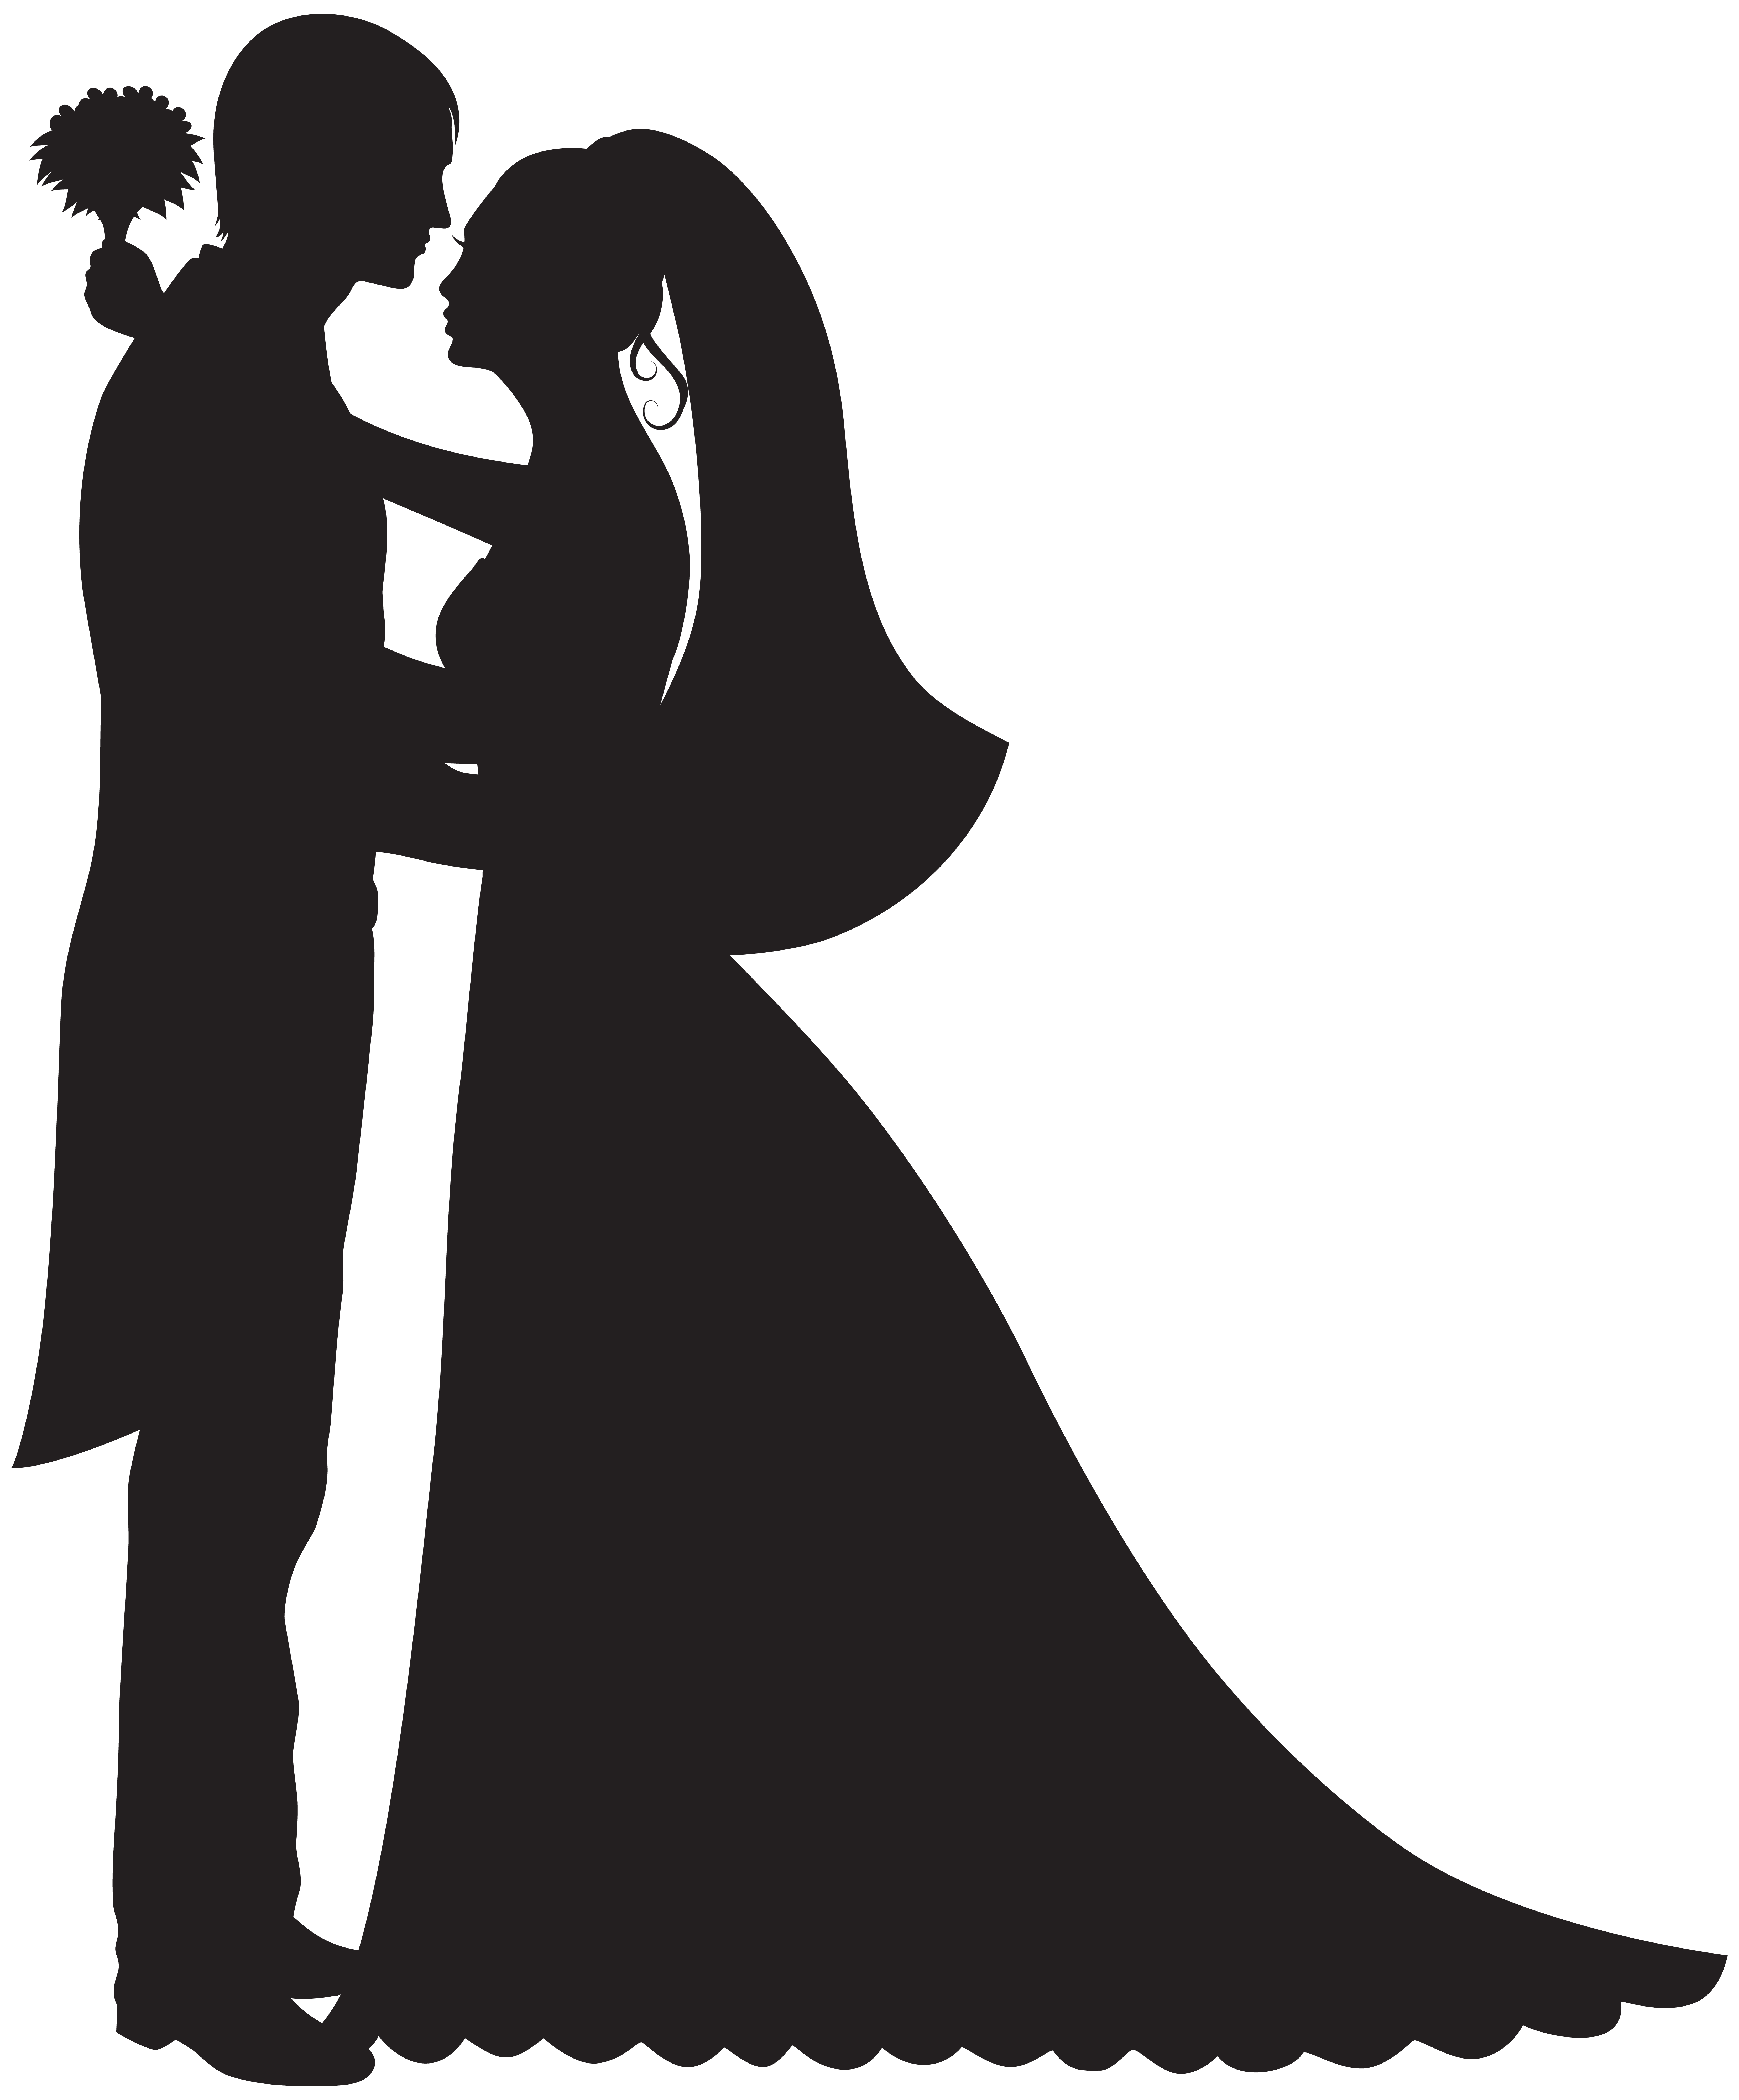 bride and groom silhouette wedding clipart at getdrawings com free rh getdrawings com free clipart bride and groom silhouette clipart bride and groom silhouette